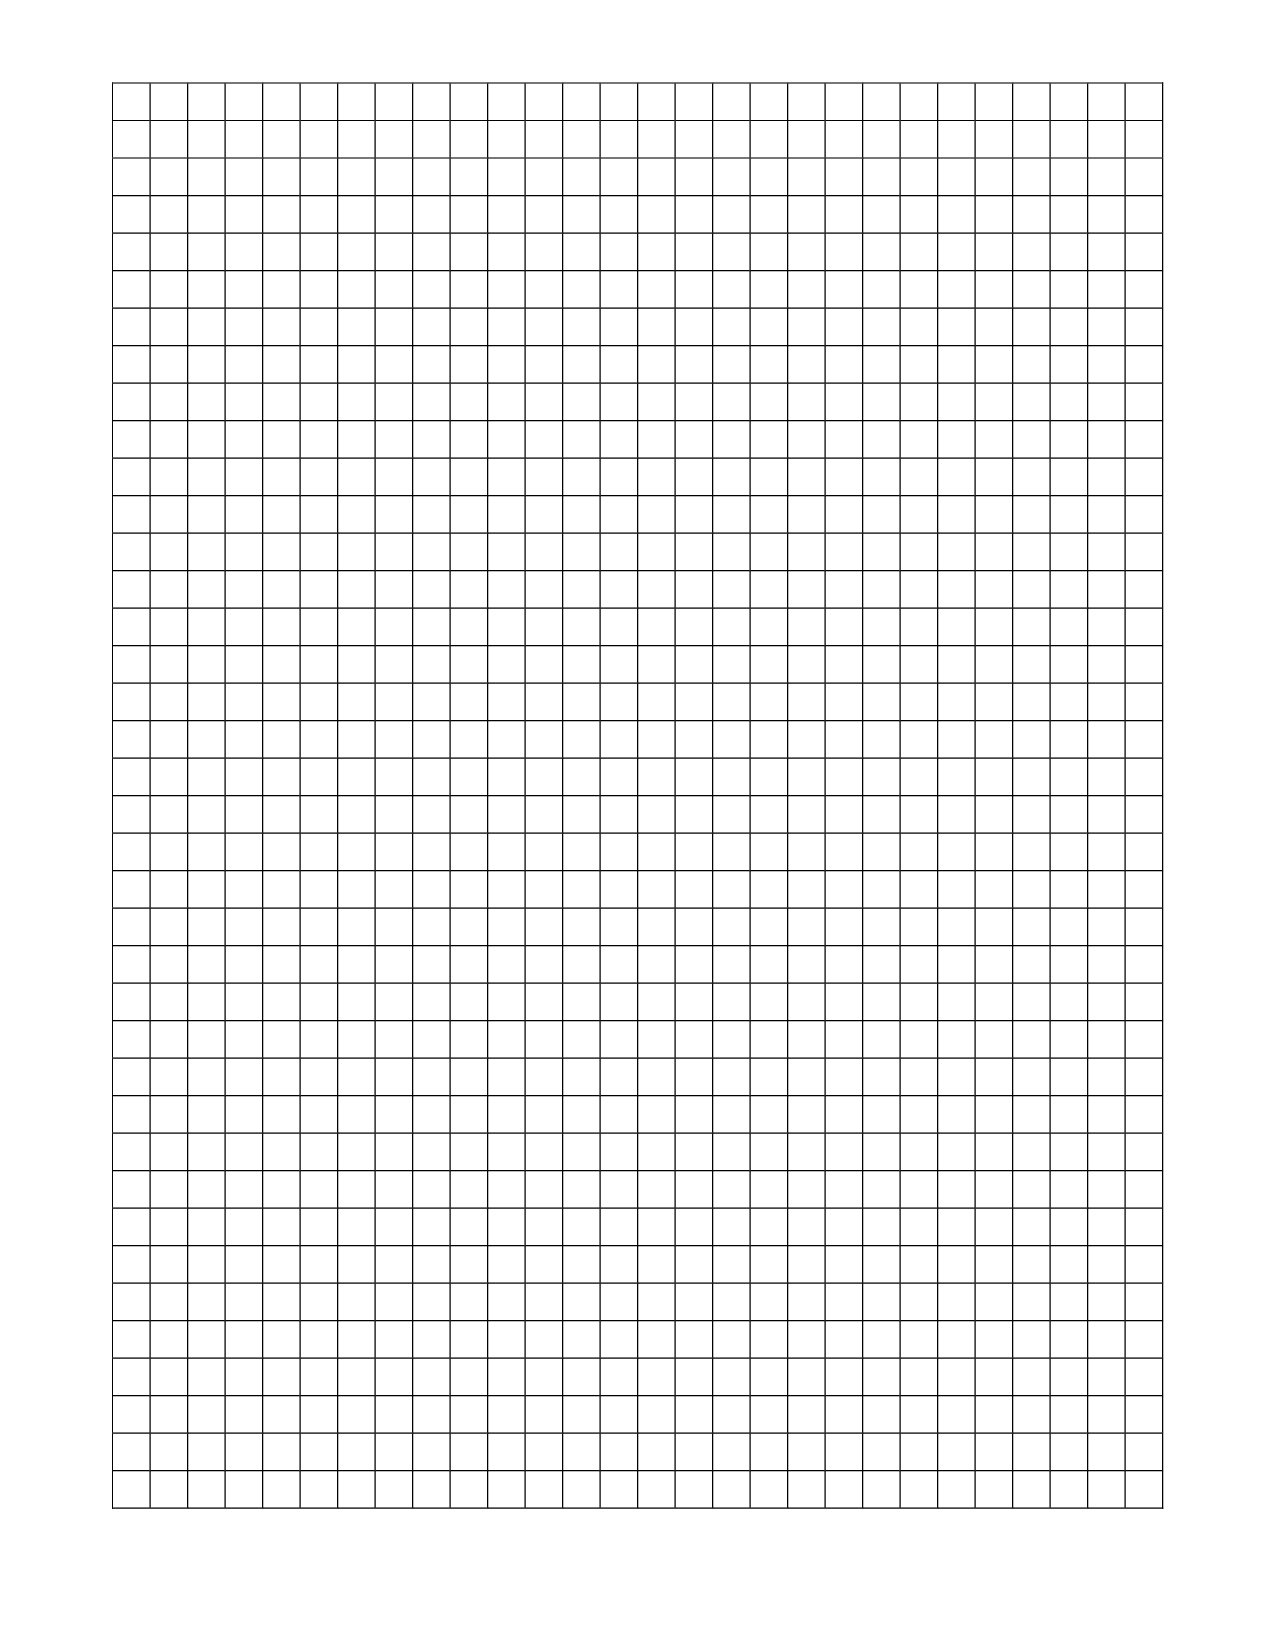 Amazing 1 Cm Graph Paper With Black Lines (A4 Size) (A) Math Worksheet #freemath |  Papirark Til Mønstertegning | Pinterest | Graph Paper And A4  Print Free Graph Paper No Download